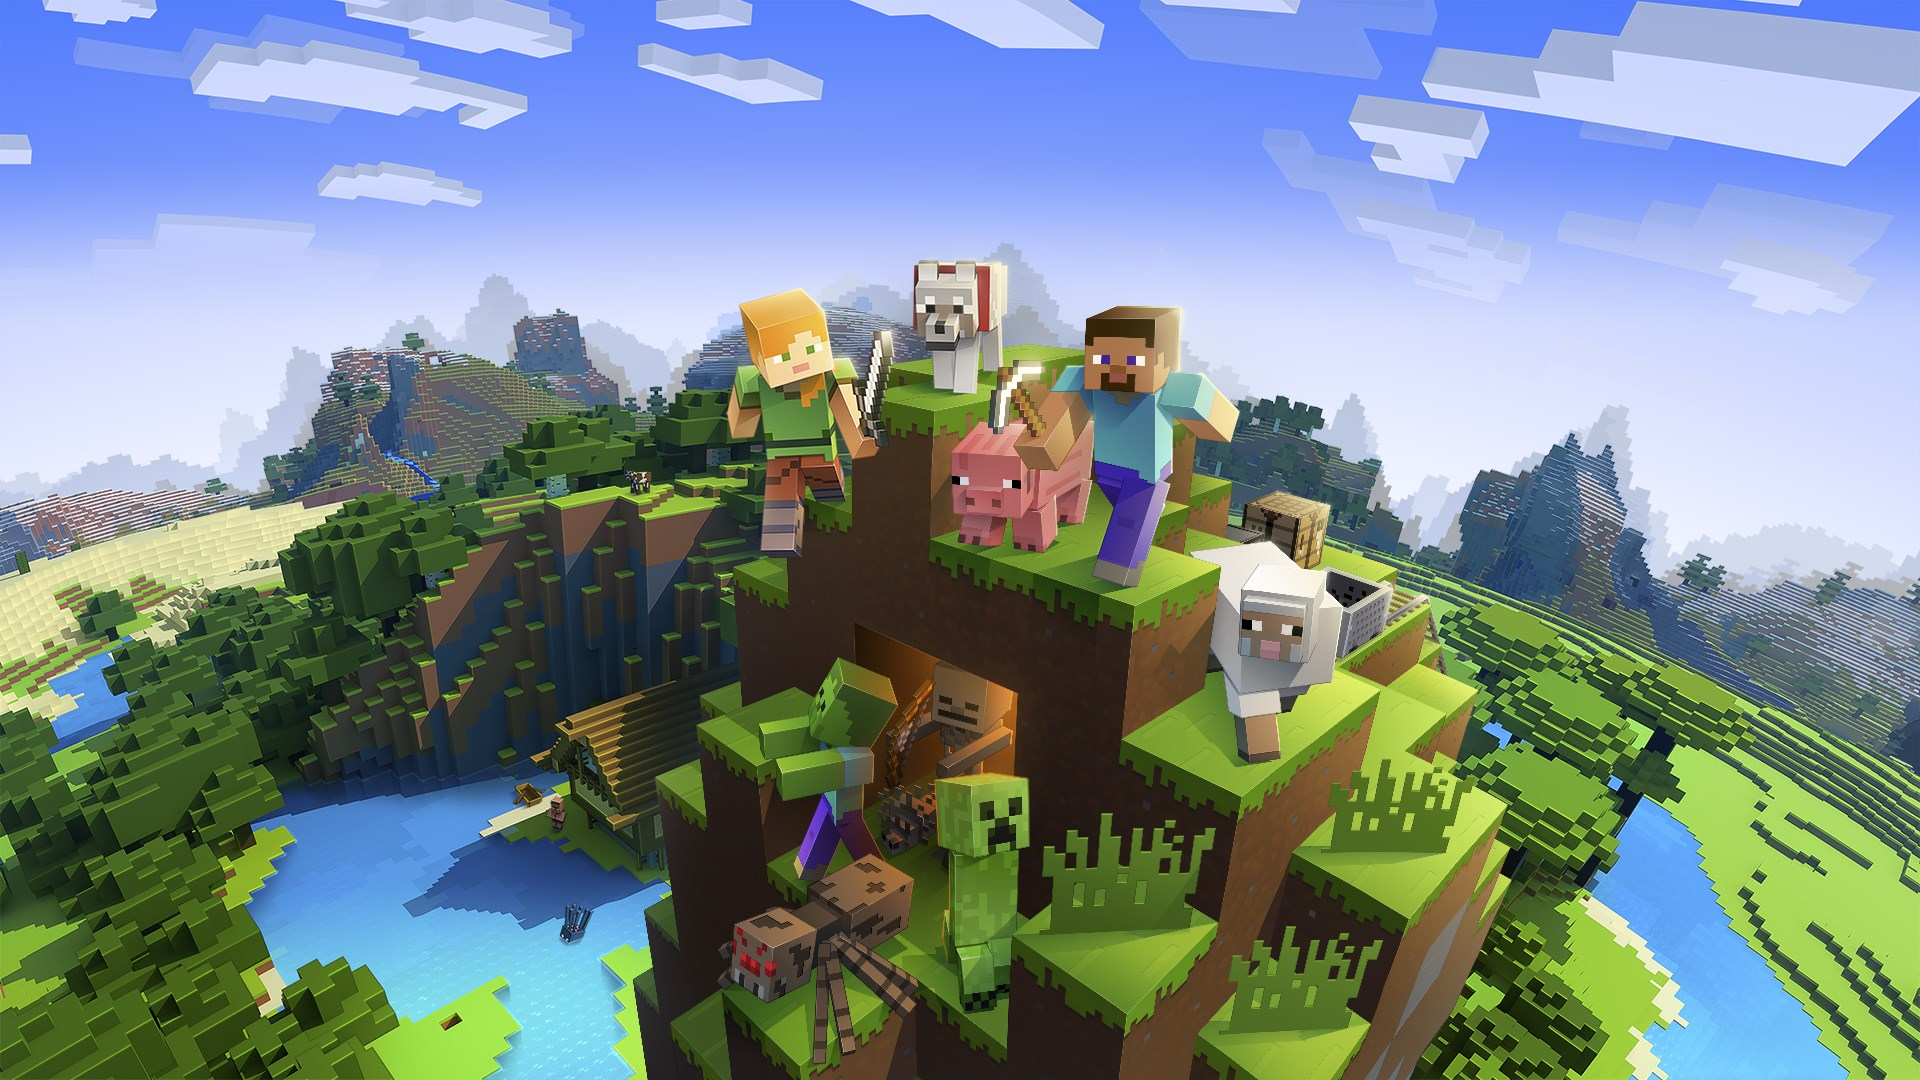 Minecraft for PlayStation 4 gets cross-play support on December 10